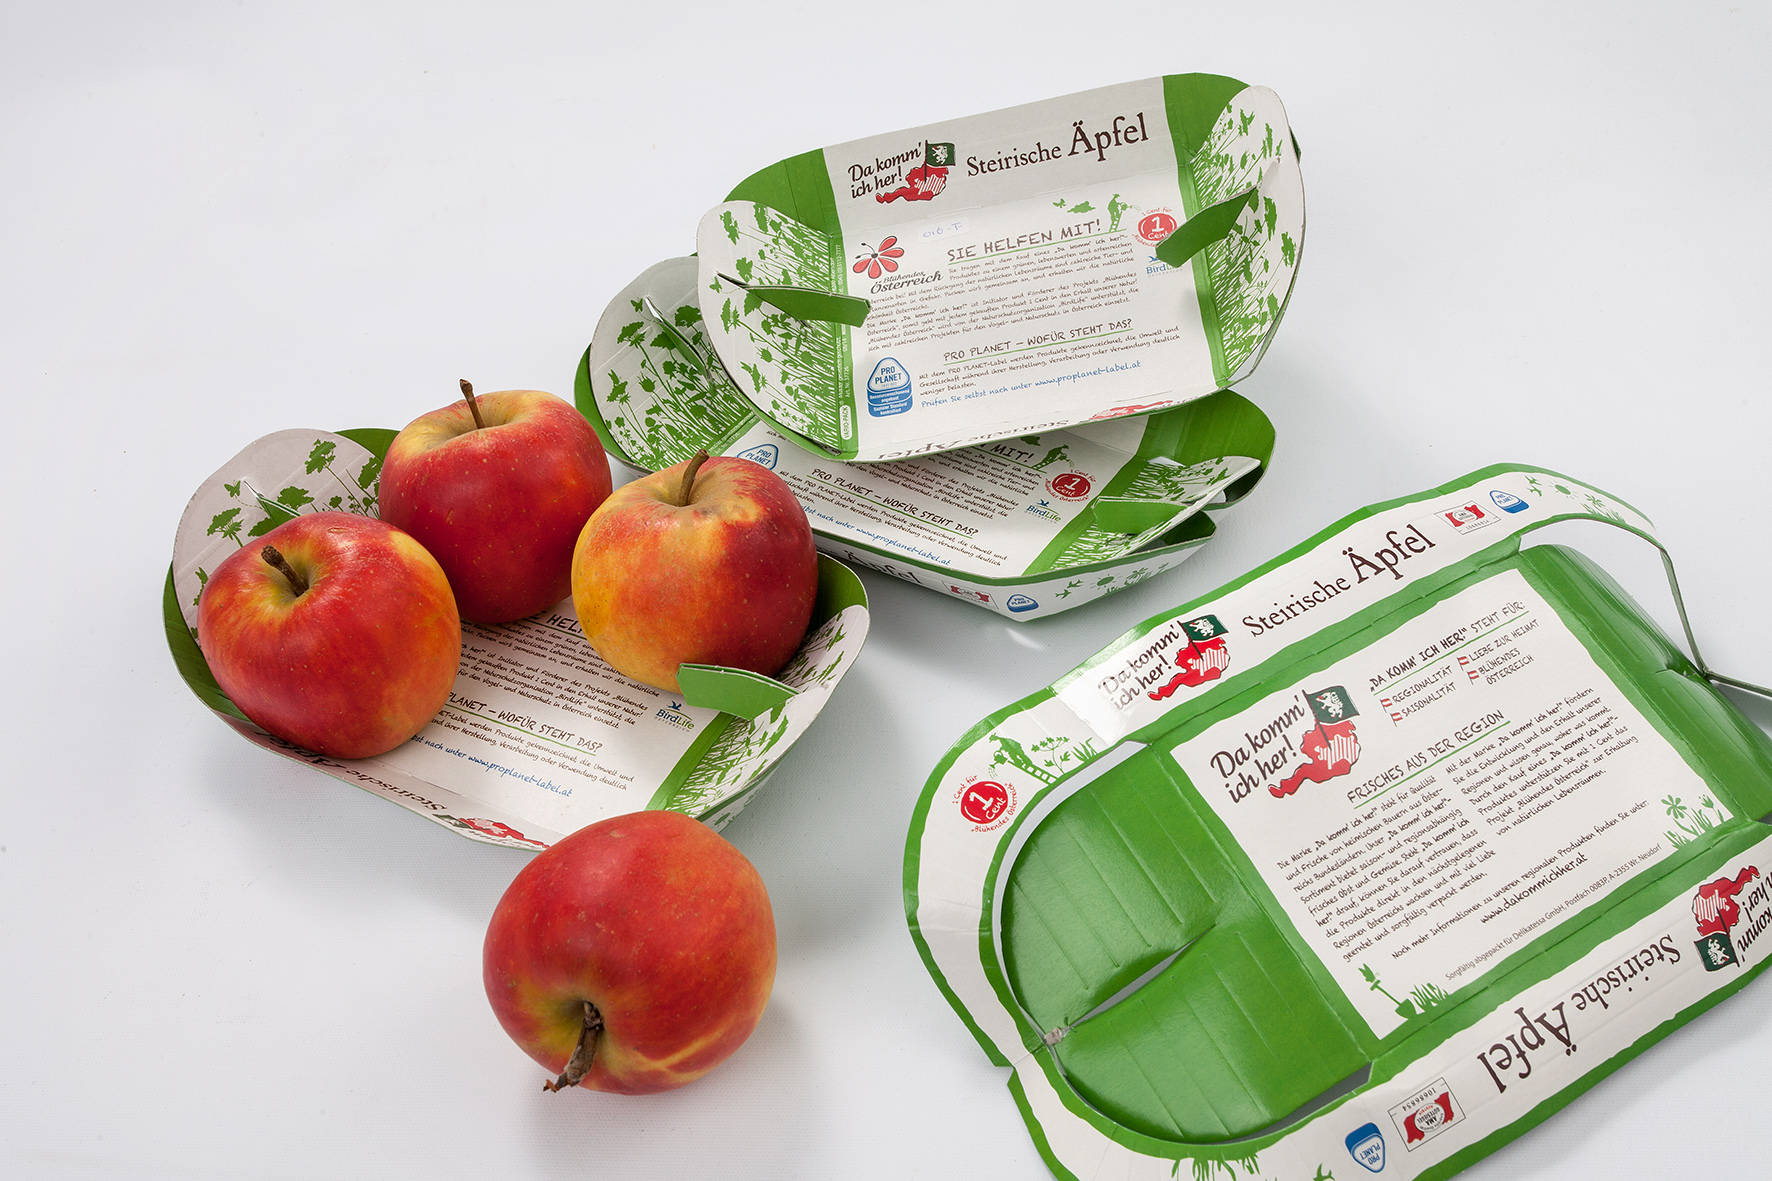 Vario-Tray for round fruits